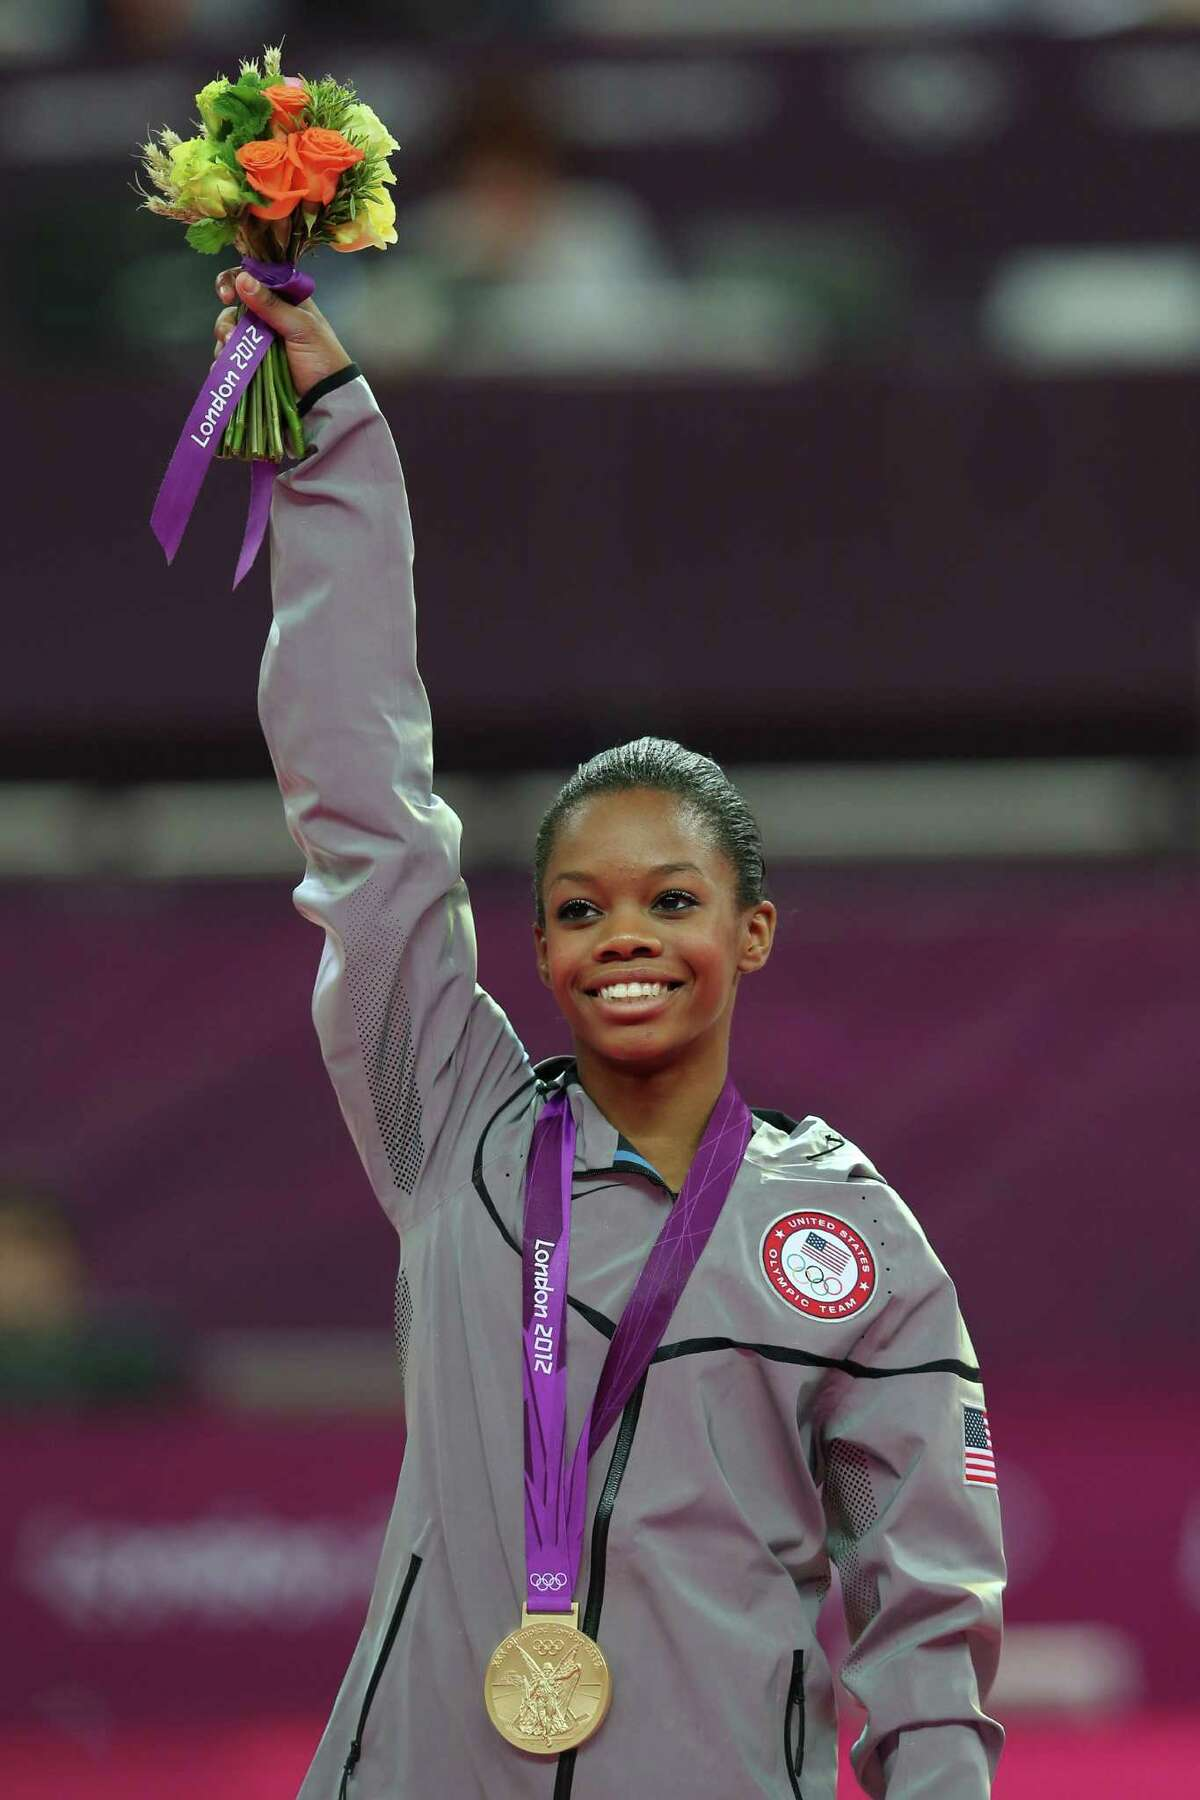 LONDON, ENGLAND - AUGUST 02: Gabrielle Douglas of the United States celebrates on the podium after winning the gold medal in the Artistic Gymnastics Women's Individual All-Around final on Day 6 of the London 2012 Olympic Games at North Greenwich Arena on August 2, 2012 in London, England.